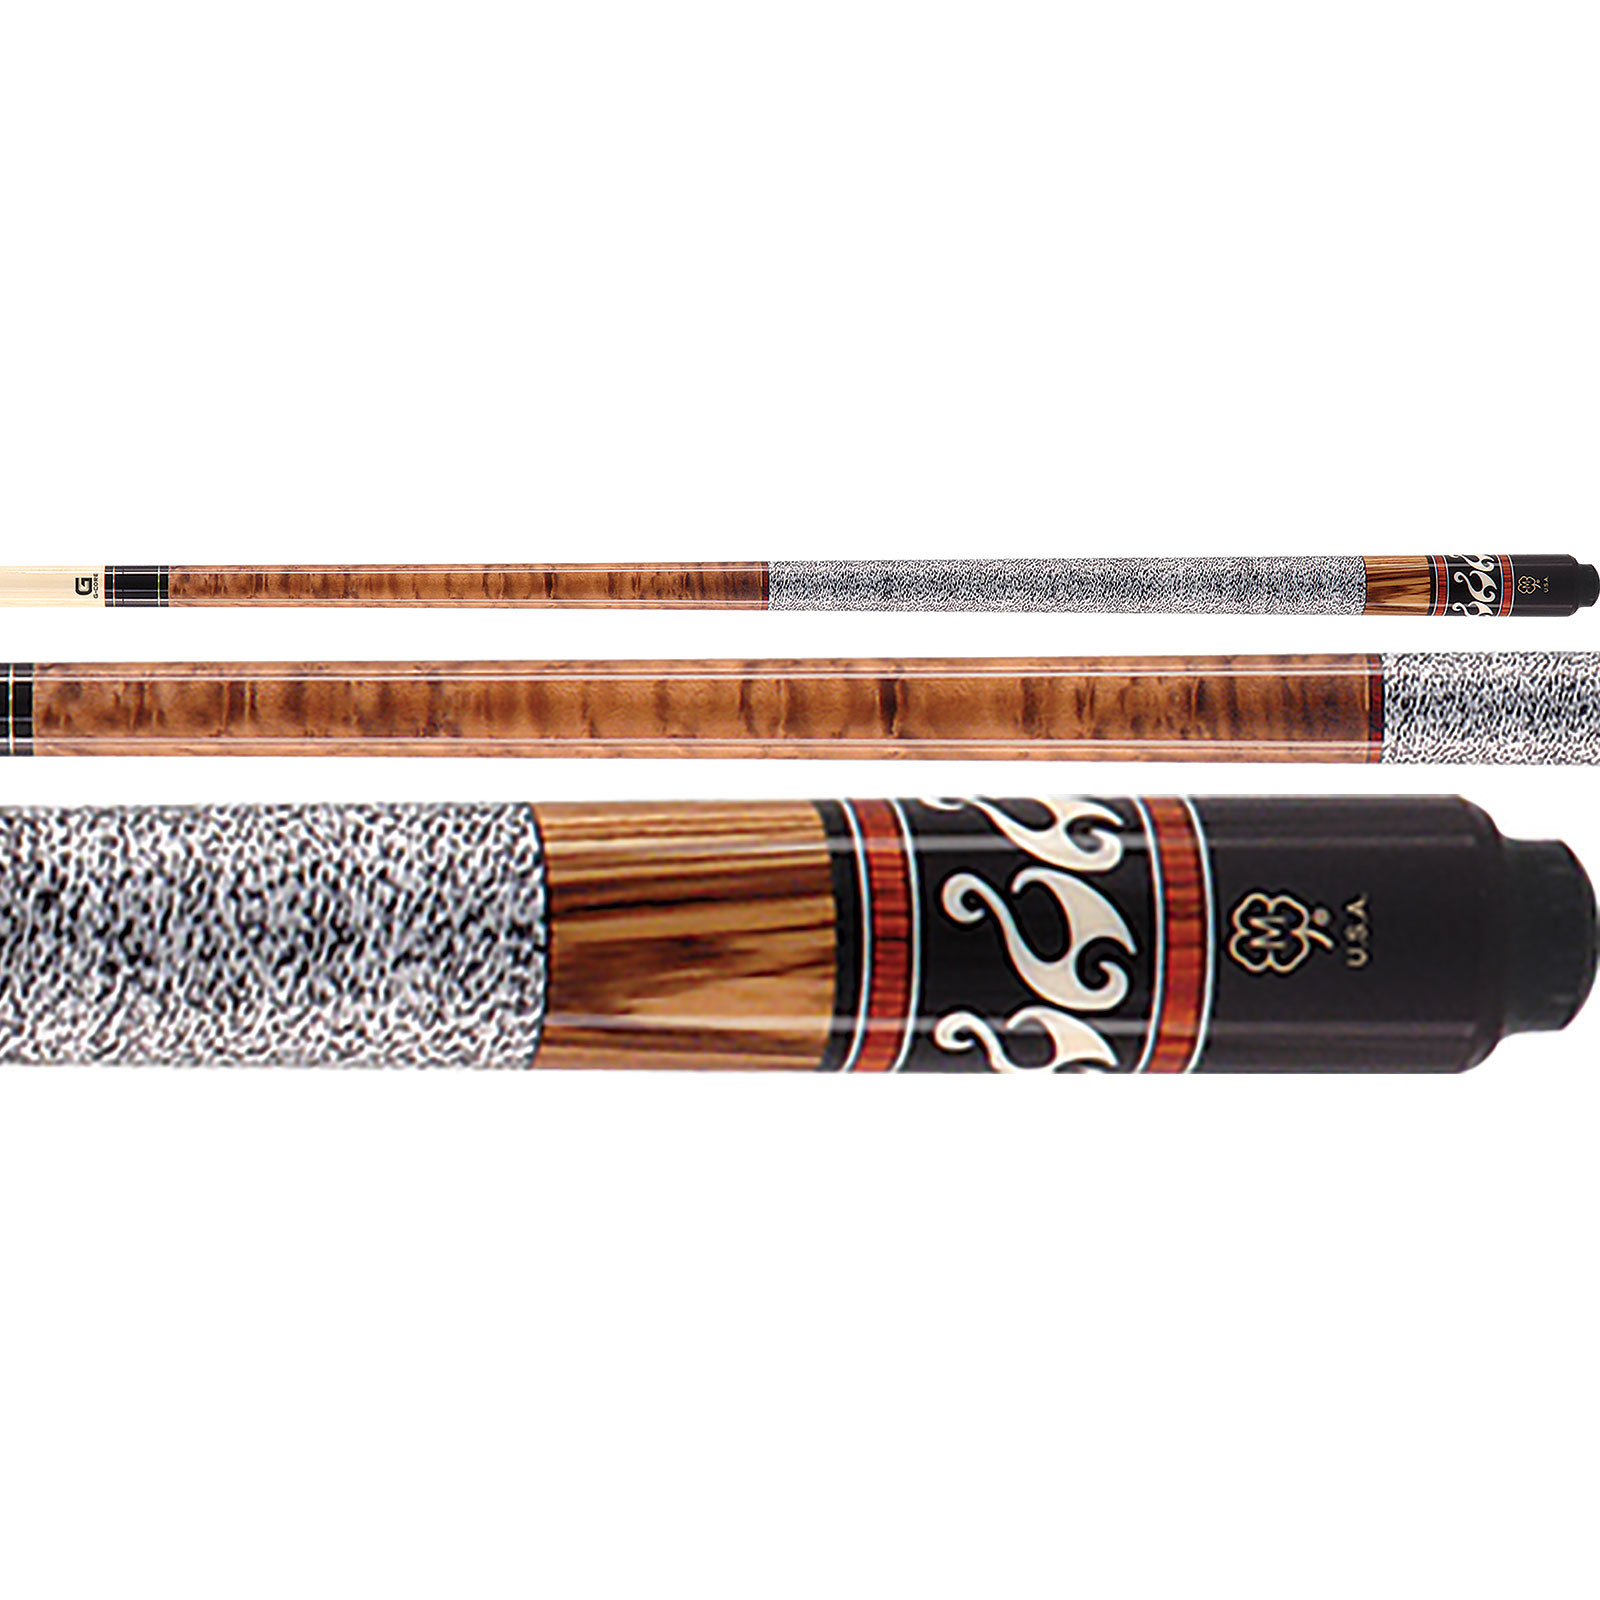 McDermott G306 G-Series Bocote Pool Cue